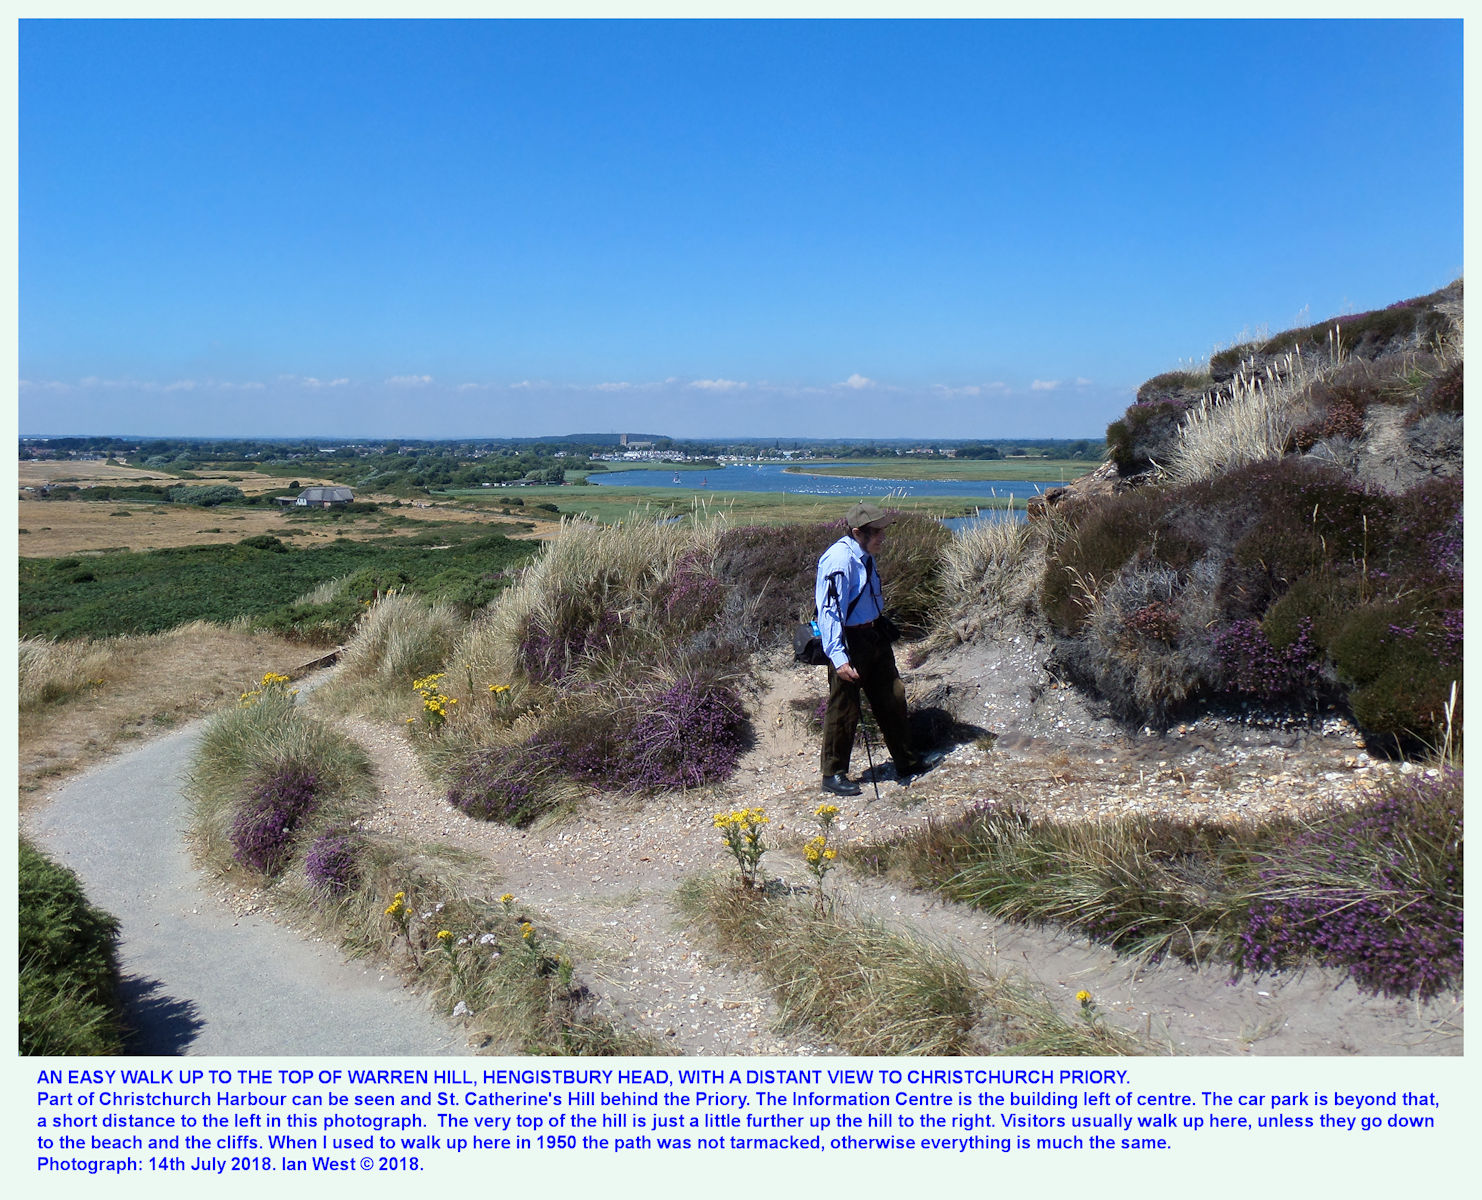 Almost at the top of the main path to the highest point of Warren Hill, Hengistbury Head, 14th July 2018